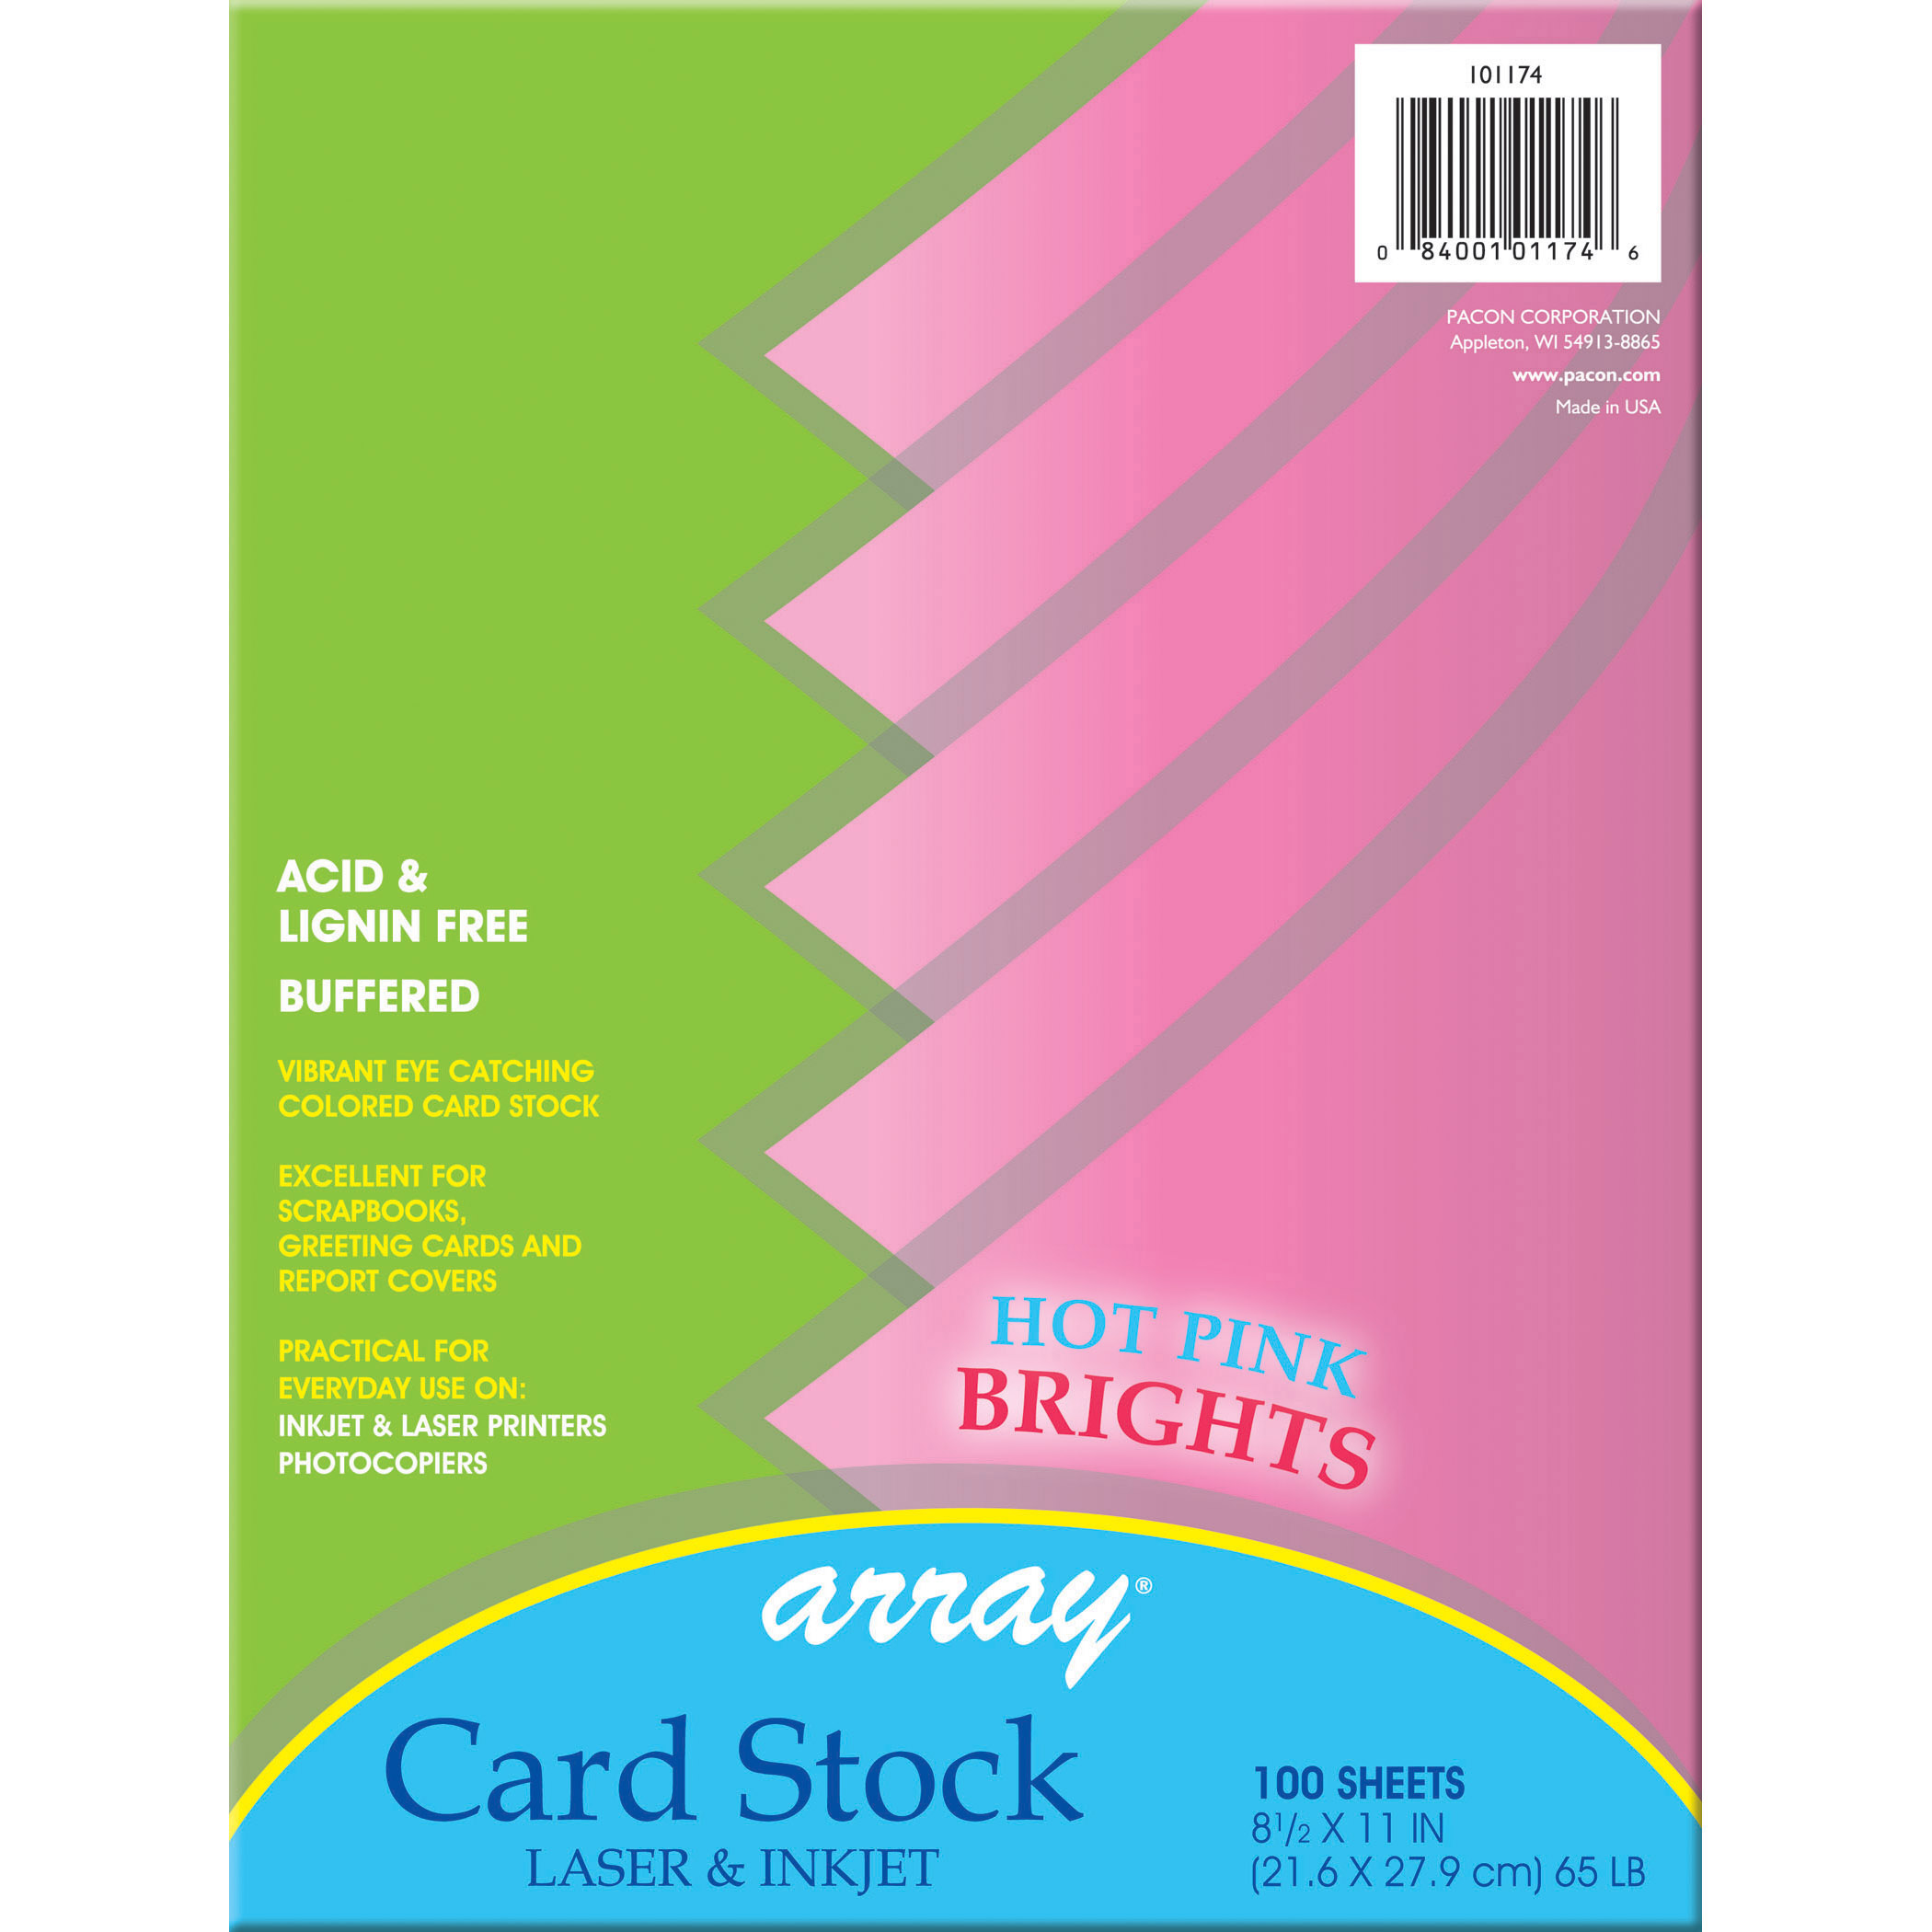 Array Card Stock, Hot Pink, 100 SHeets Per Pack, 2 Packs by PACON CORPORATION